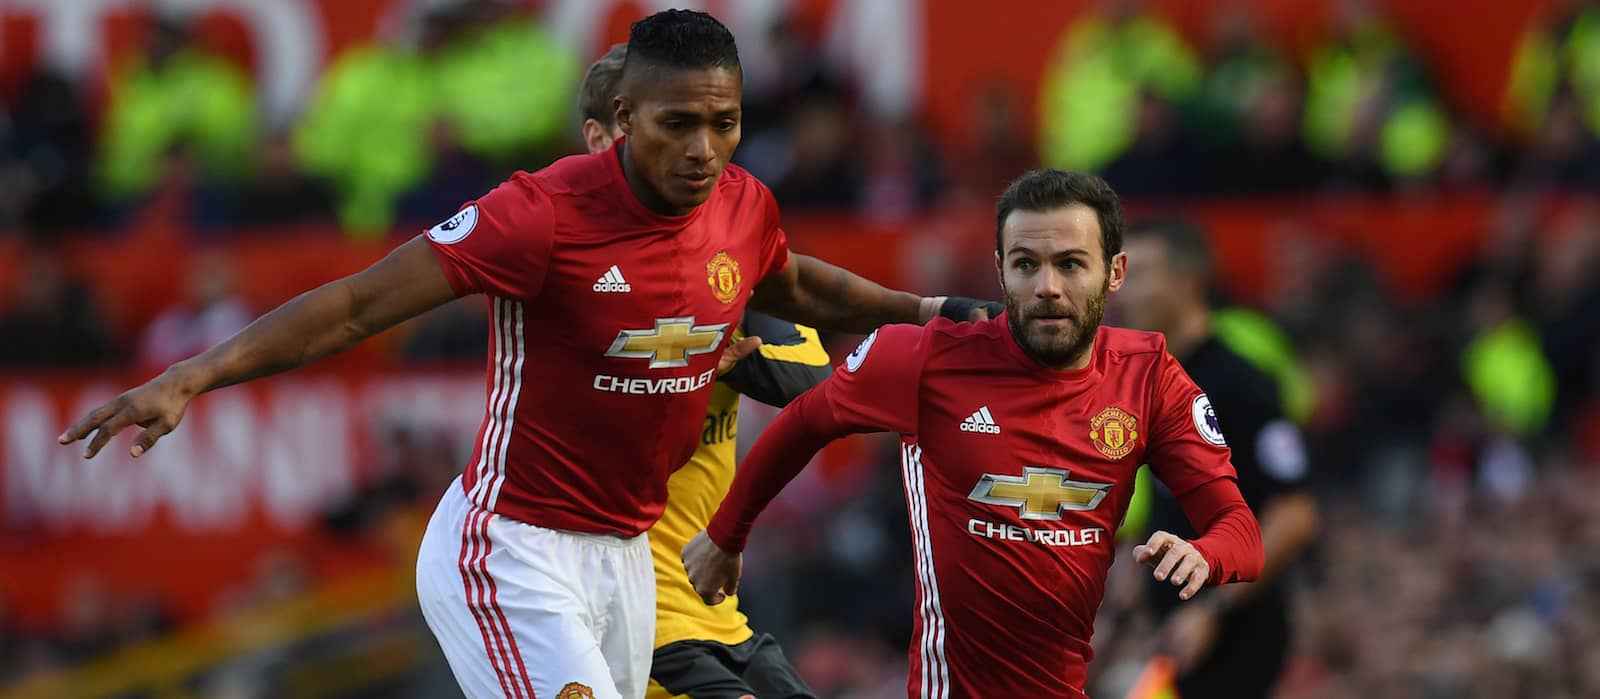 Manchester United vs Stoke City: Potential XI with Juan Mata and Antonio Valencia